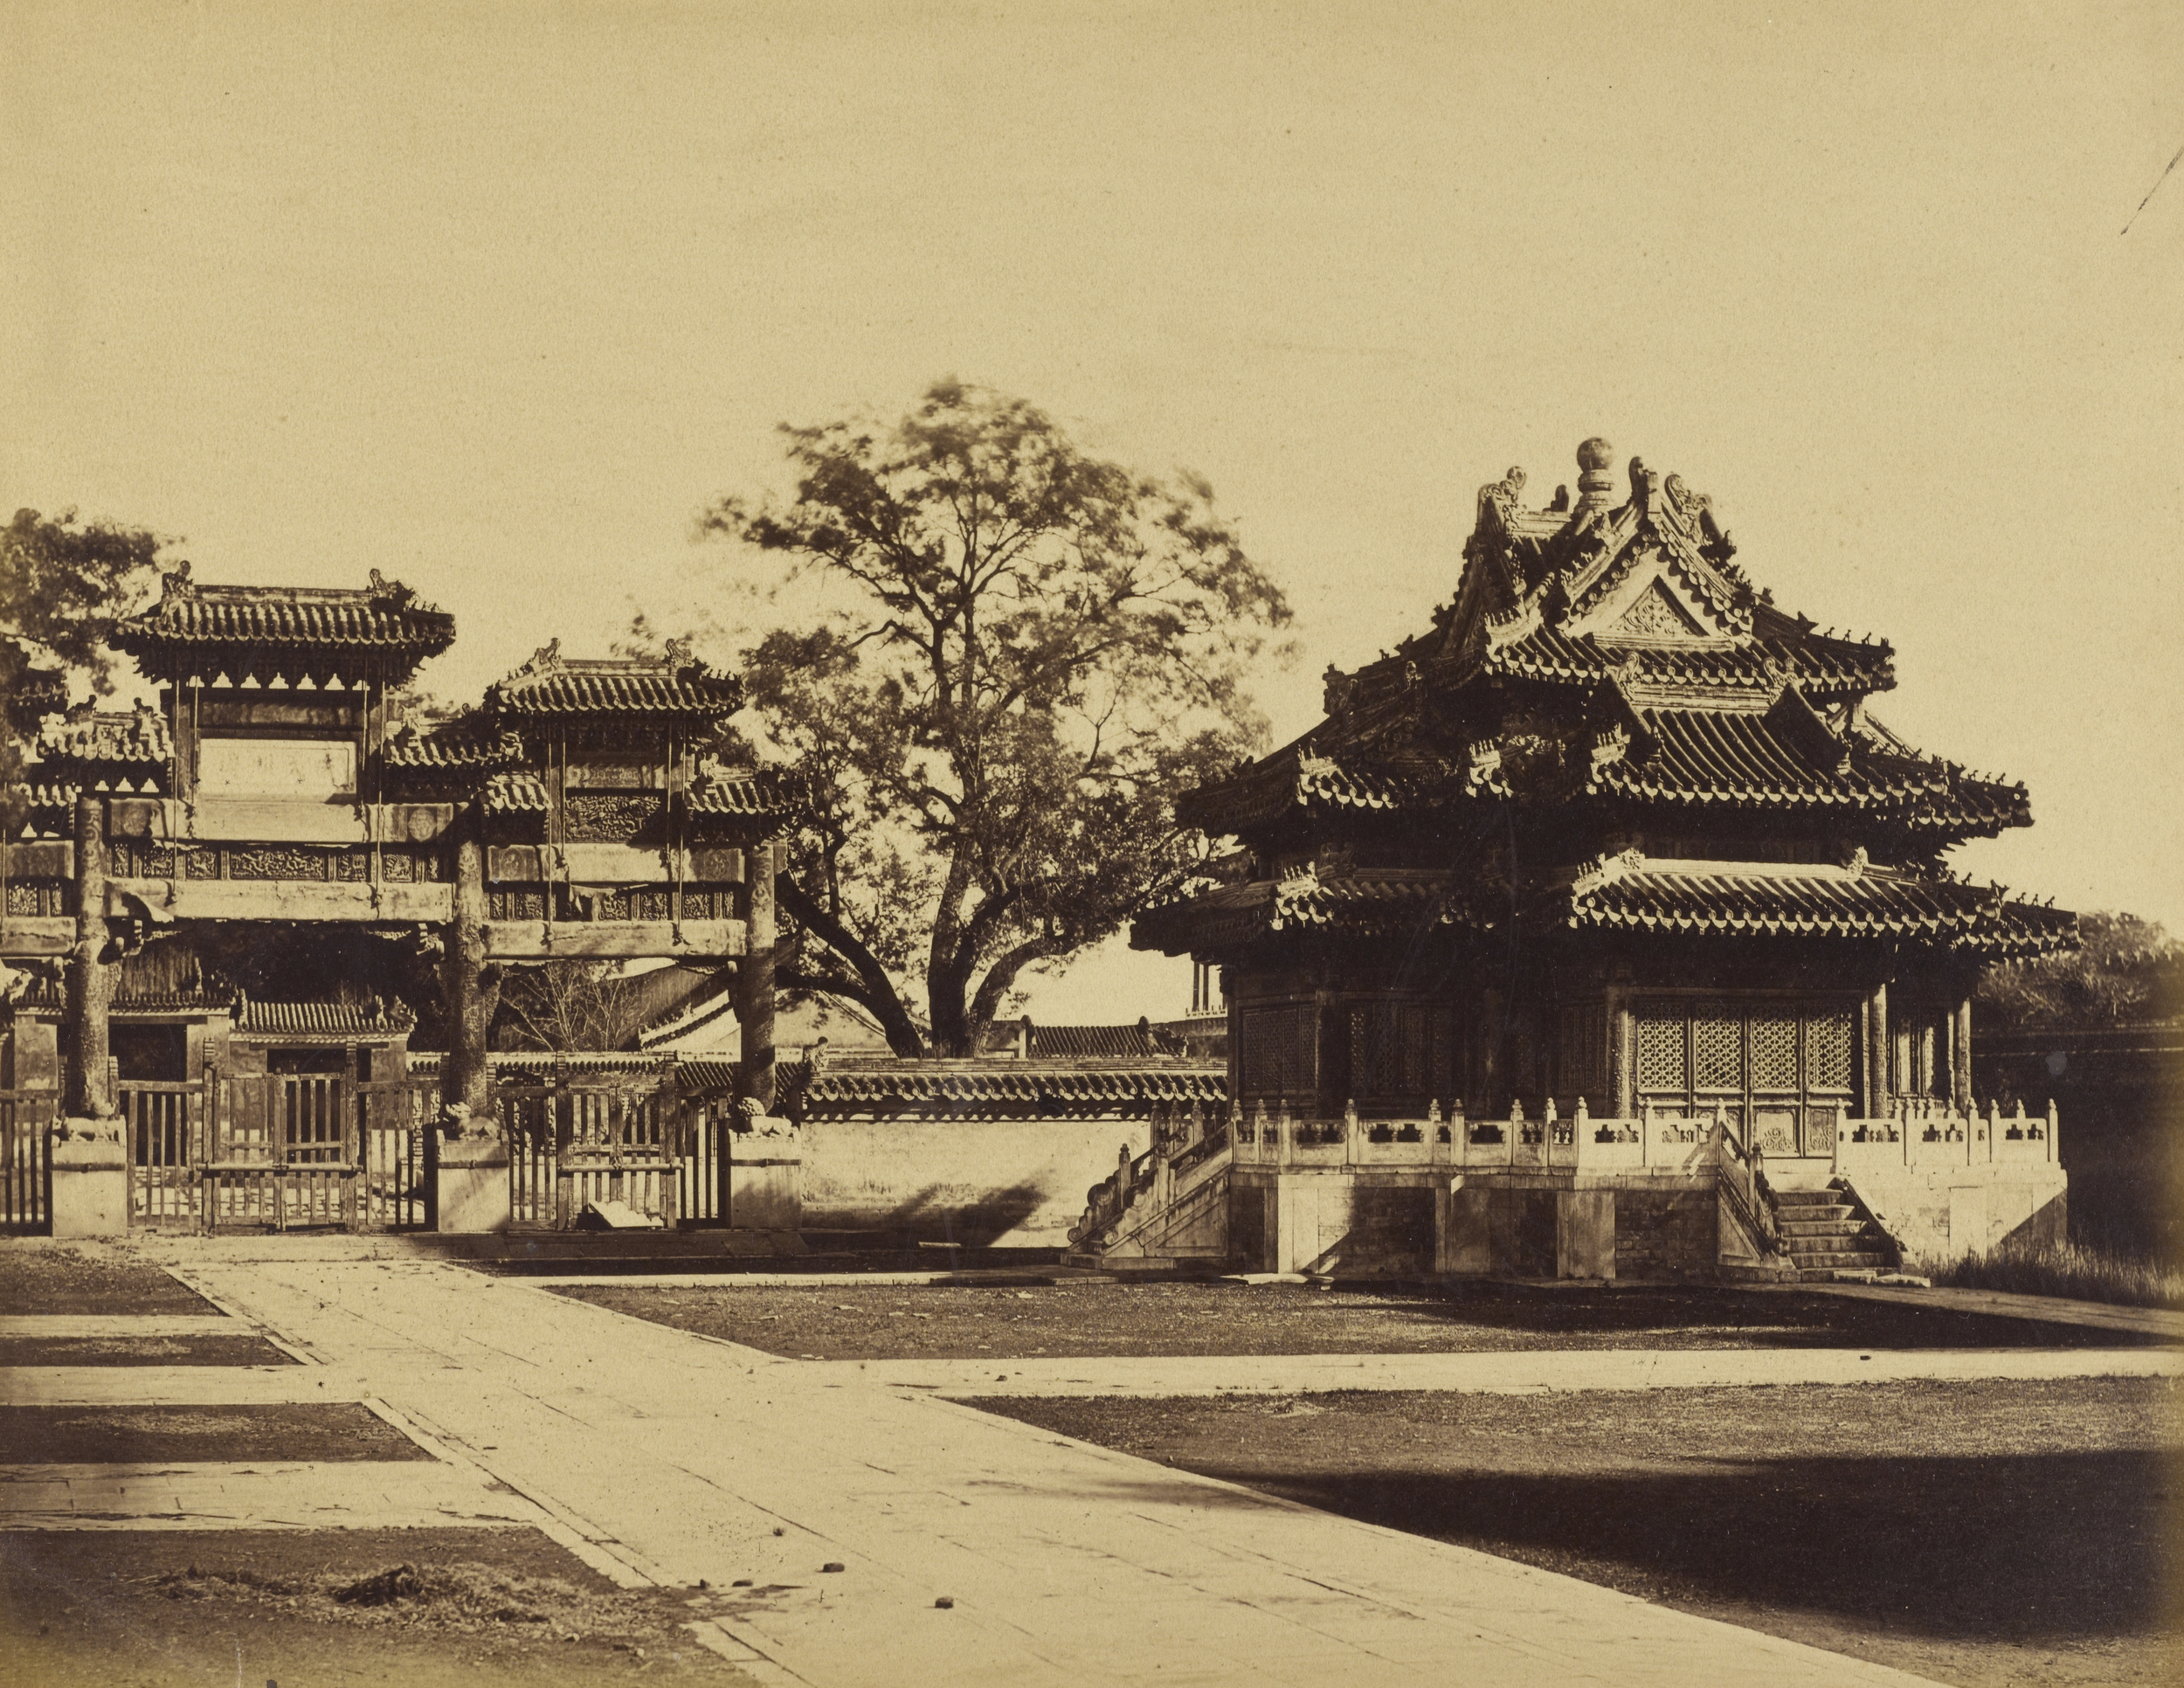 Imperial Winter Palace, Pekin, October 29, 1860, Albumen silver print, 22.5 x 29.1 cm. The J. Paul Getty Museum, Los Angeles